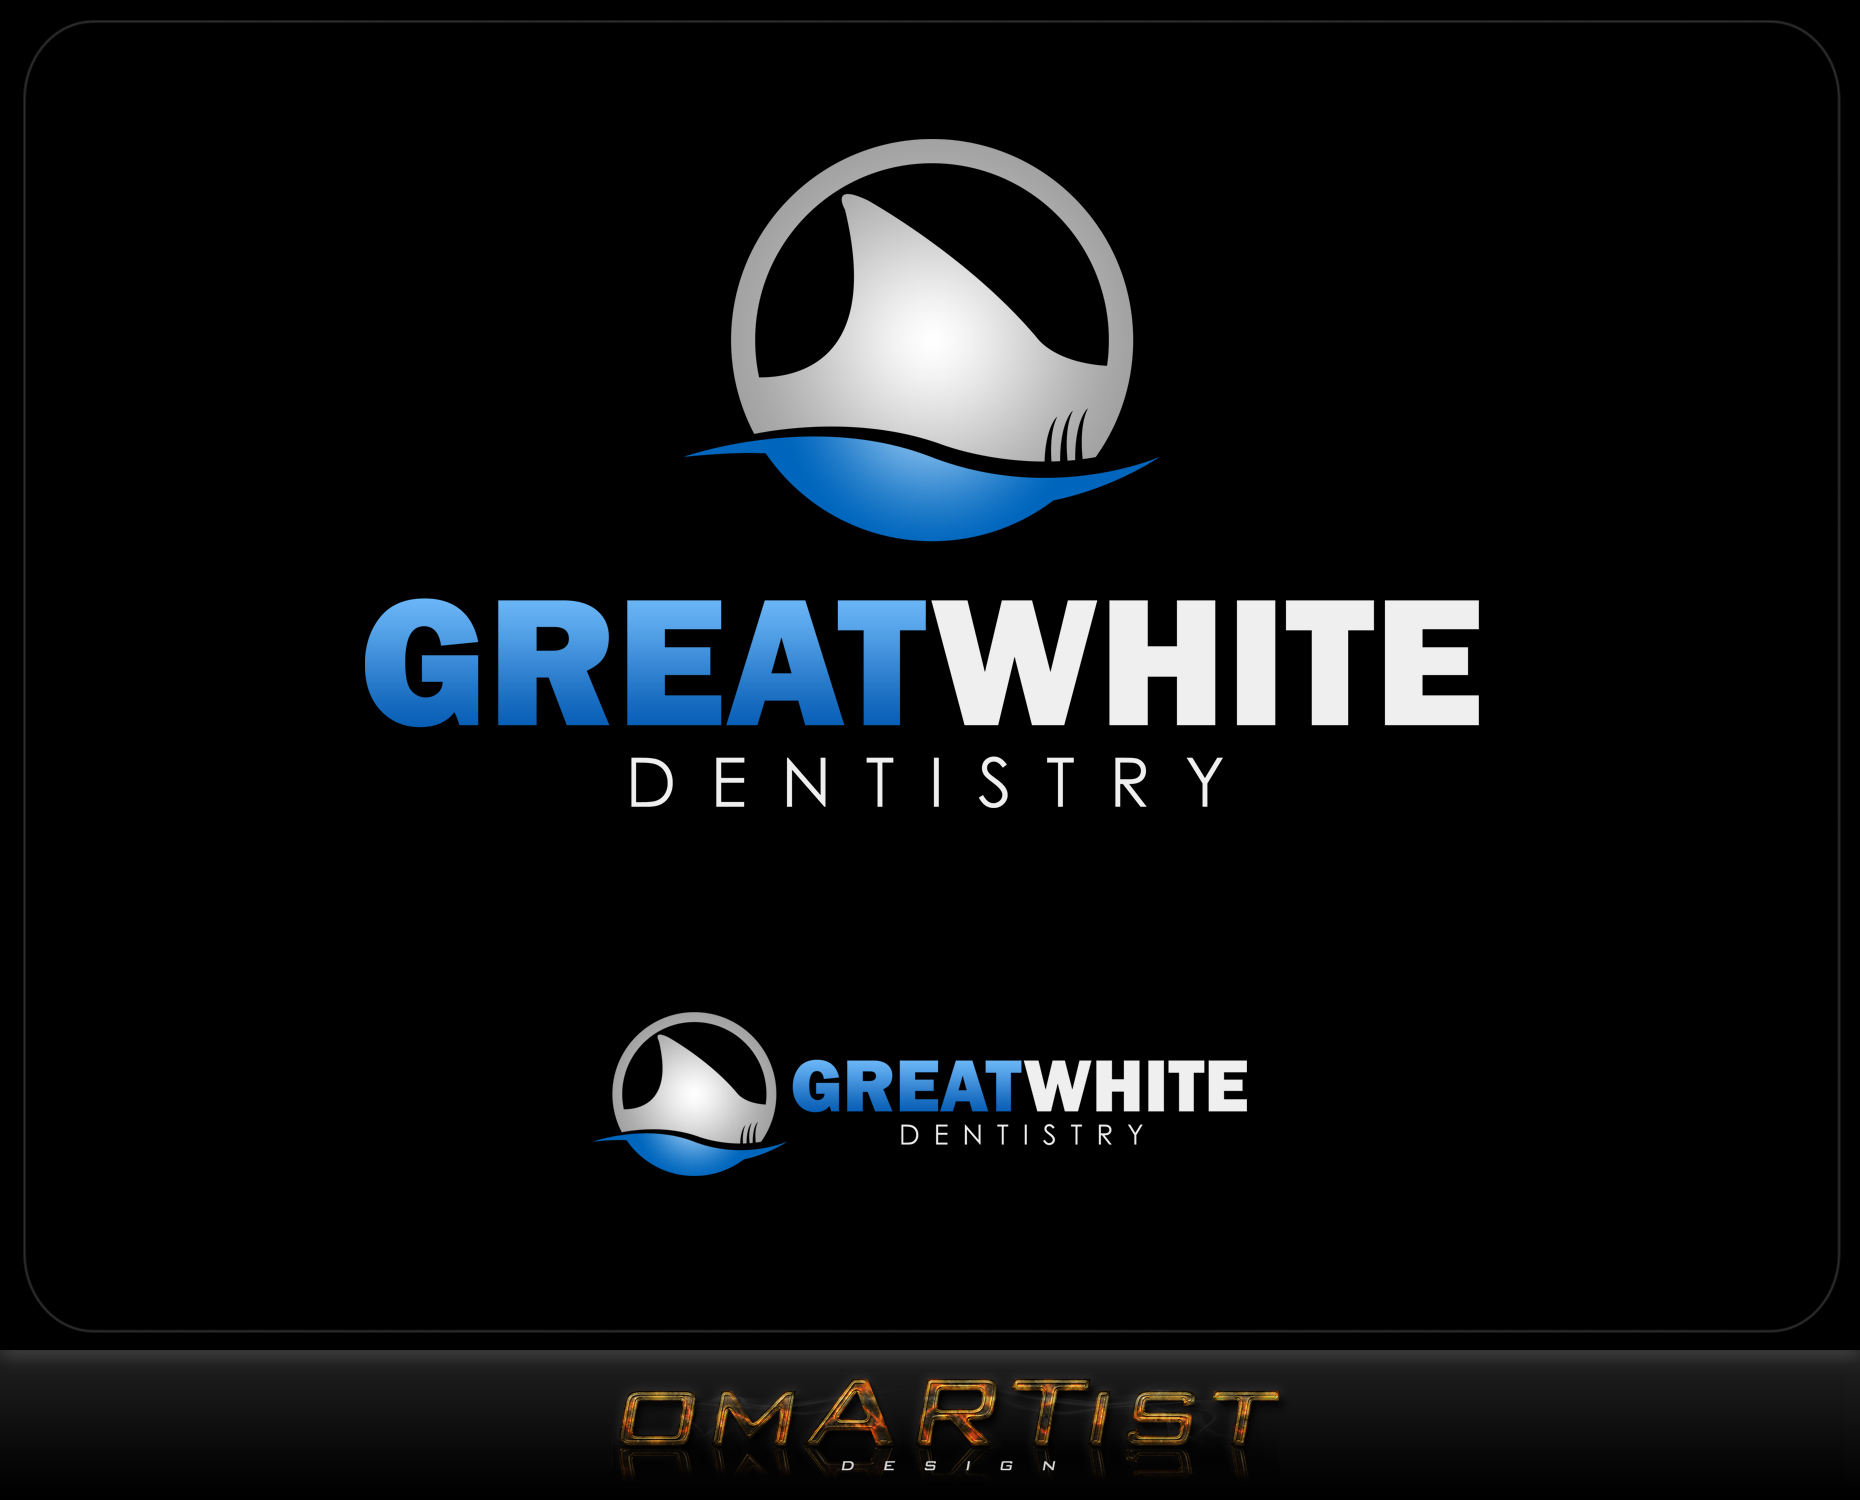 Logo Design by omARTist - Entry No. 117 in the Logo Design Contest Logo Design for Great White Dentistry.